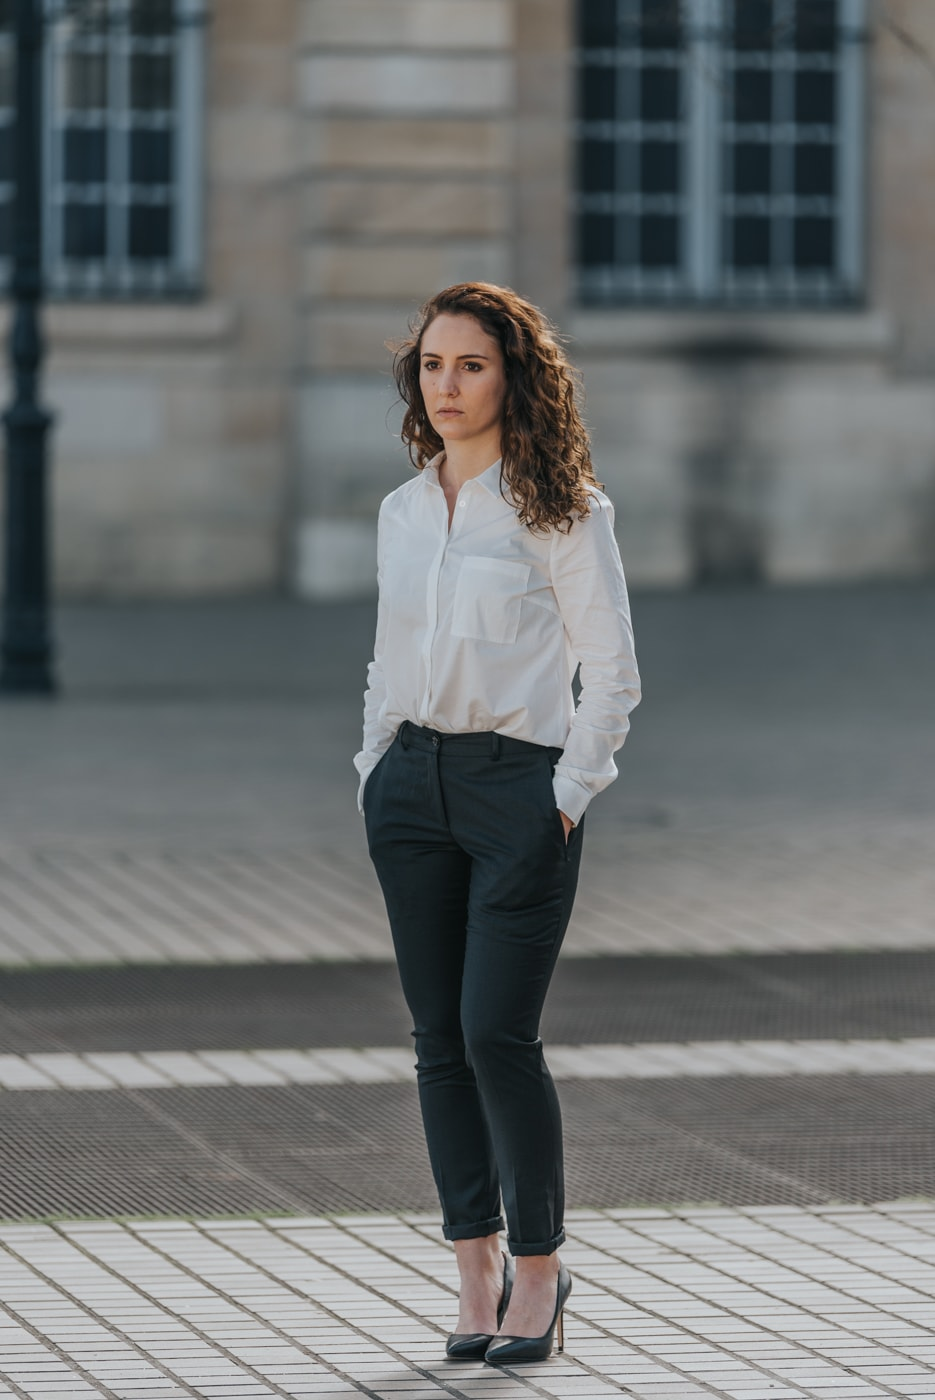 pantalon sur-mesure Buzoni Bordeaux blog mode paris